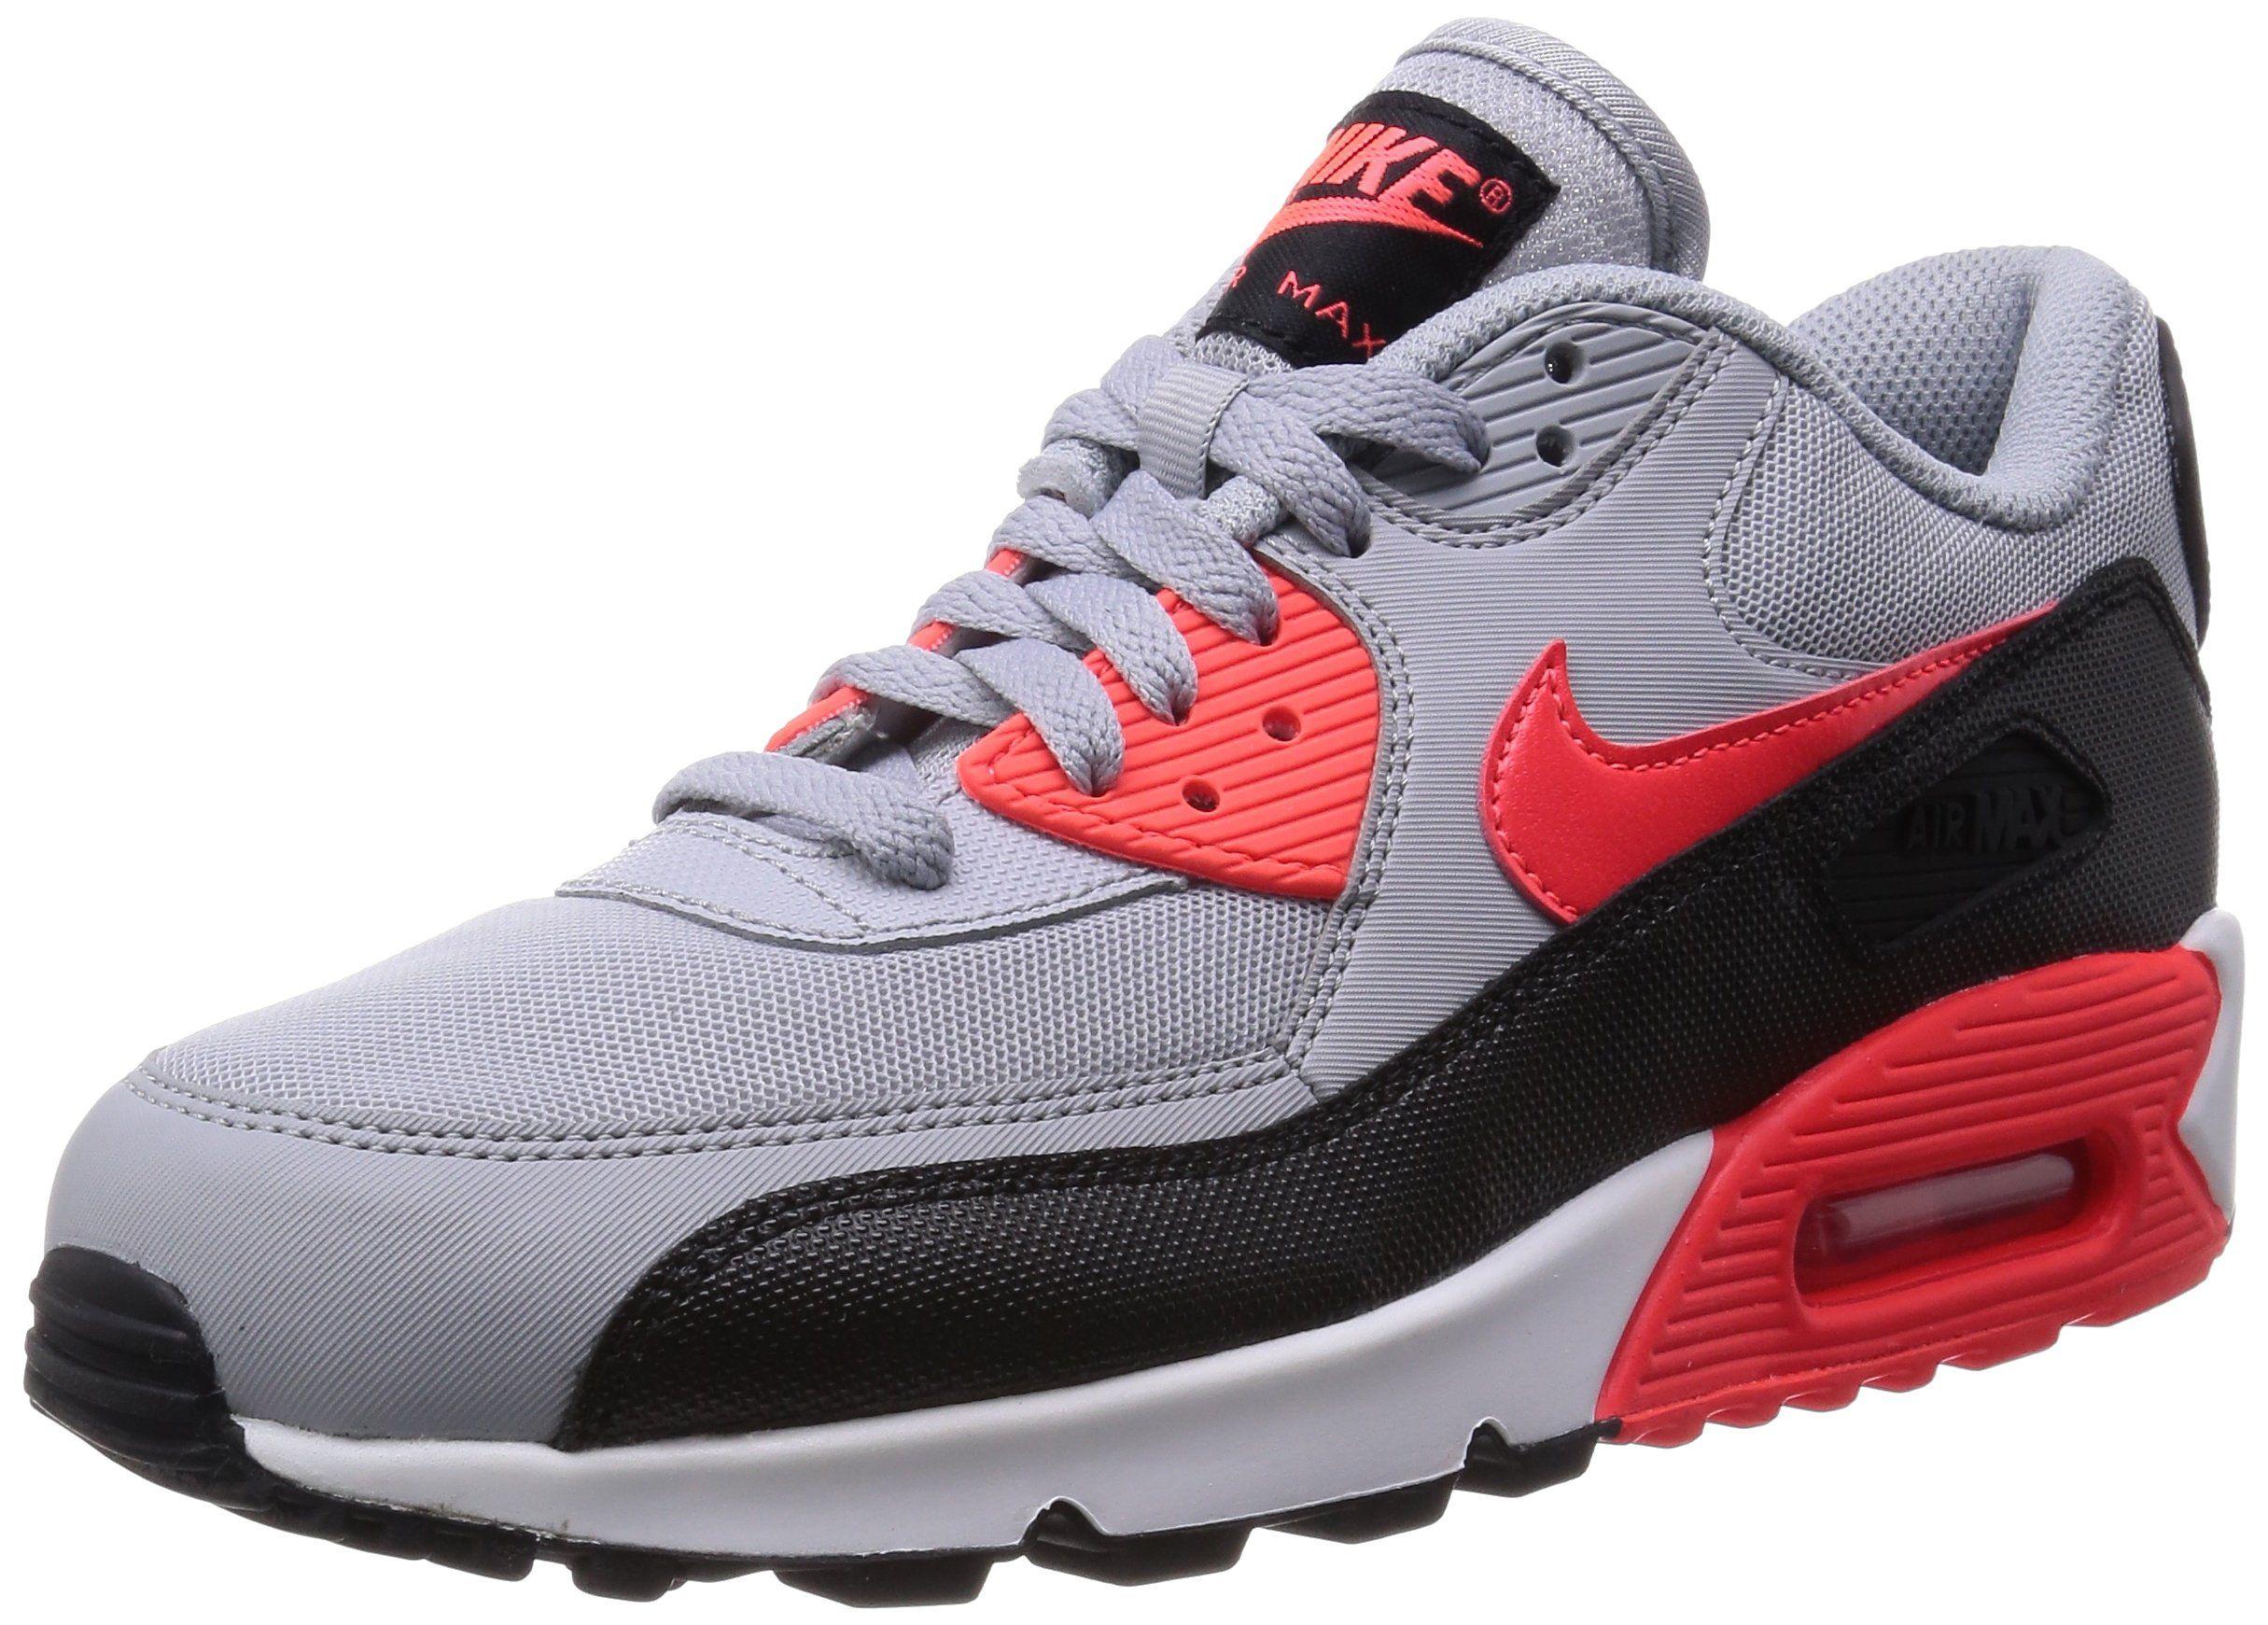 new style 855f8 0de81 Nike Womens Air Max 90 Essential Wolf Grey Infrared Black White Running Shoe